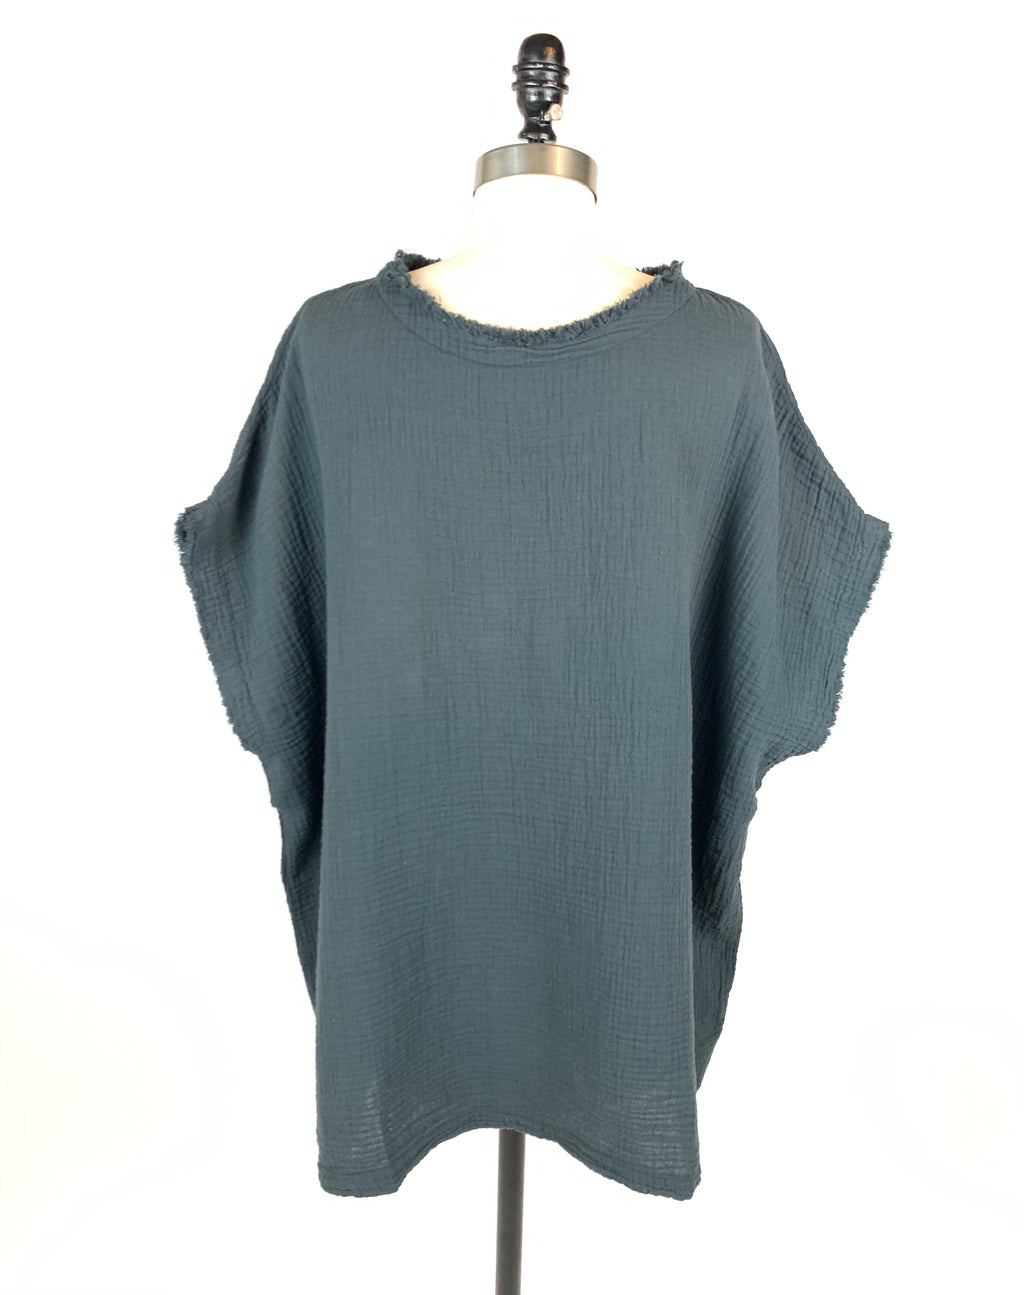 Black Crane - Gauze Top (Faded Black)